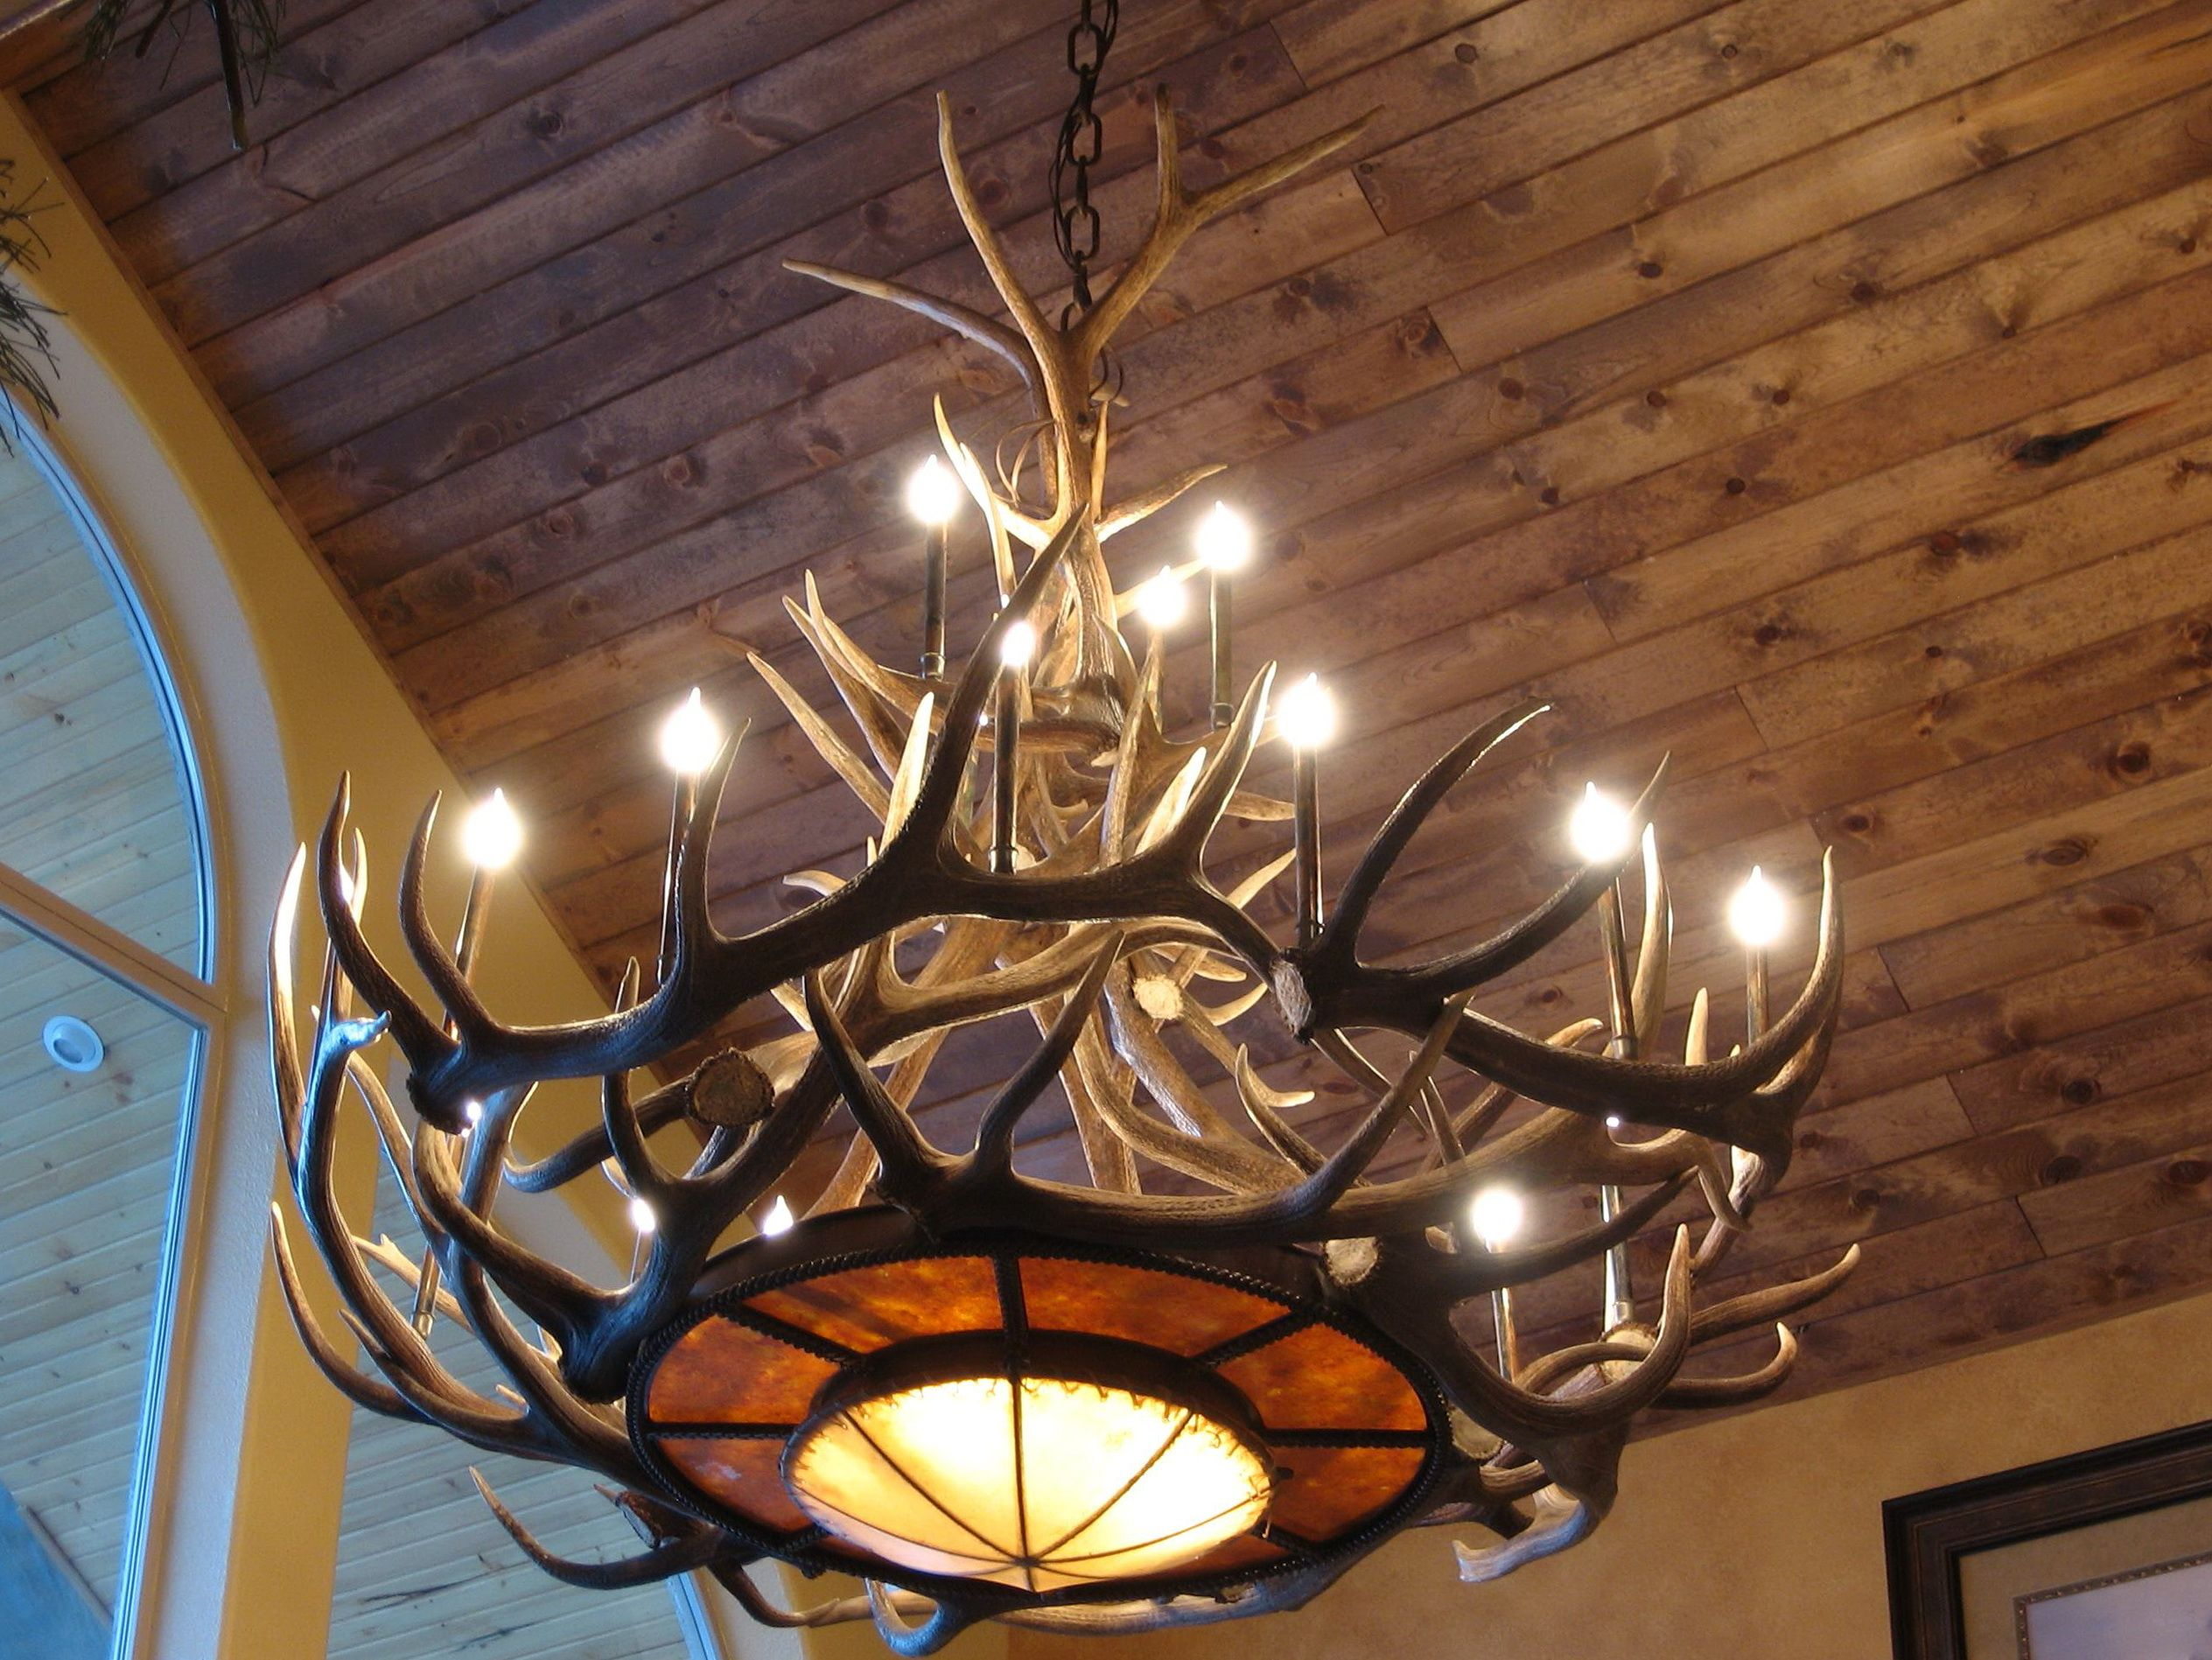 Lamps cream deer antler chandelier vintage entertainment furniture elk horn chandelier sale nothing provides design and more luxury in to your home that is deluxe than a few hand forged ir aloadofball Image collections